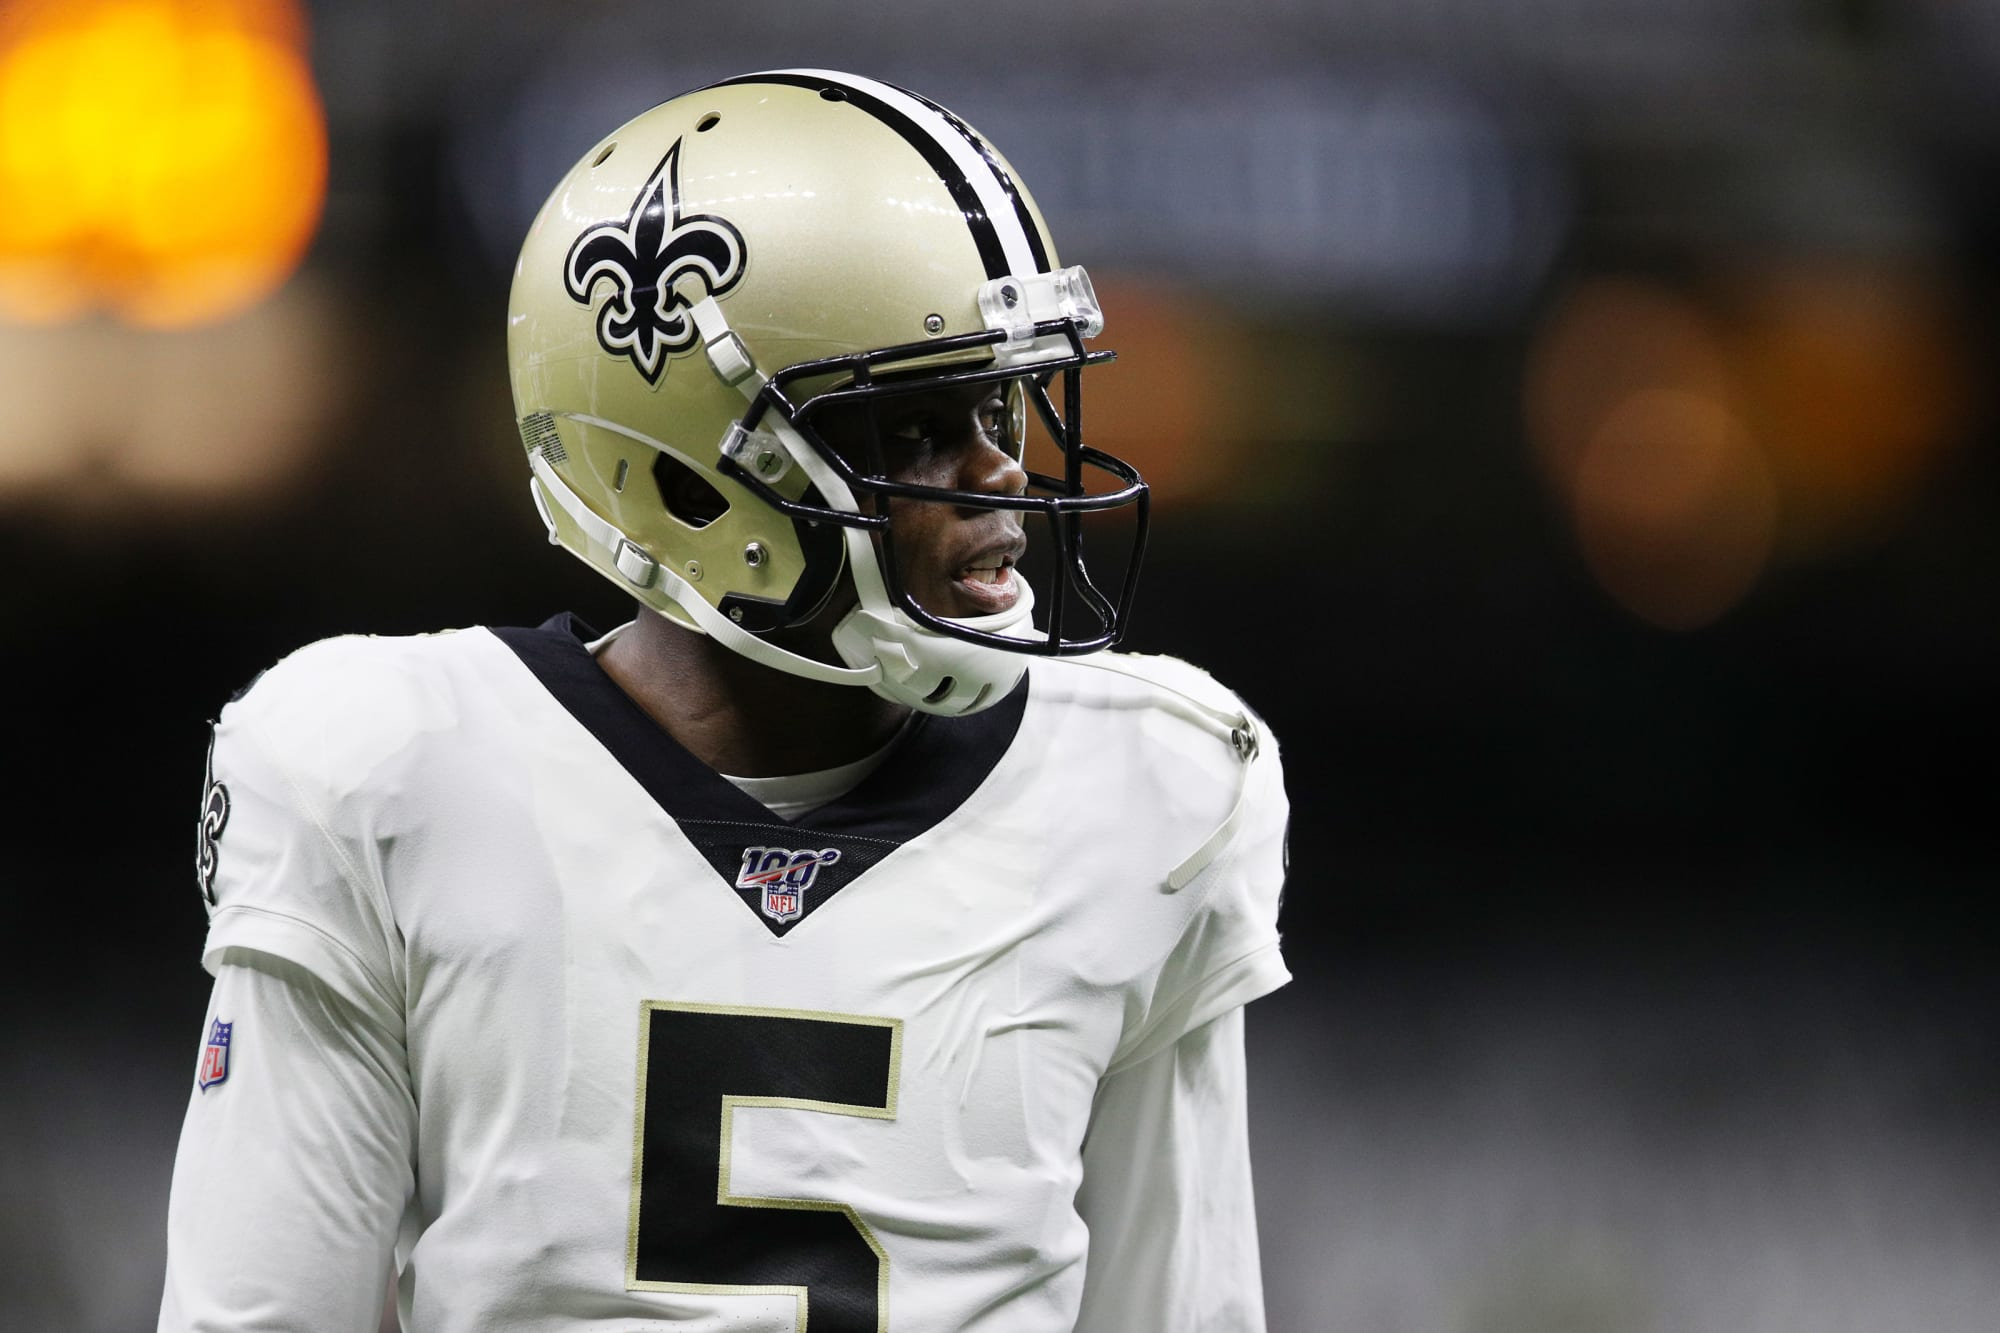 Teddy Bridgewater's motivational tweet about injury recovery will give you chills